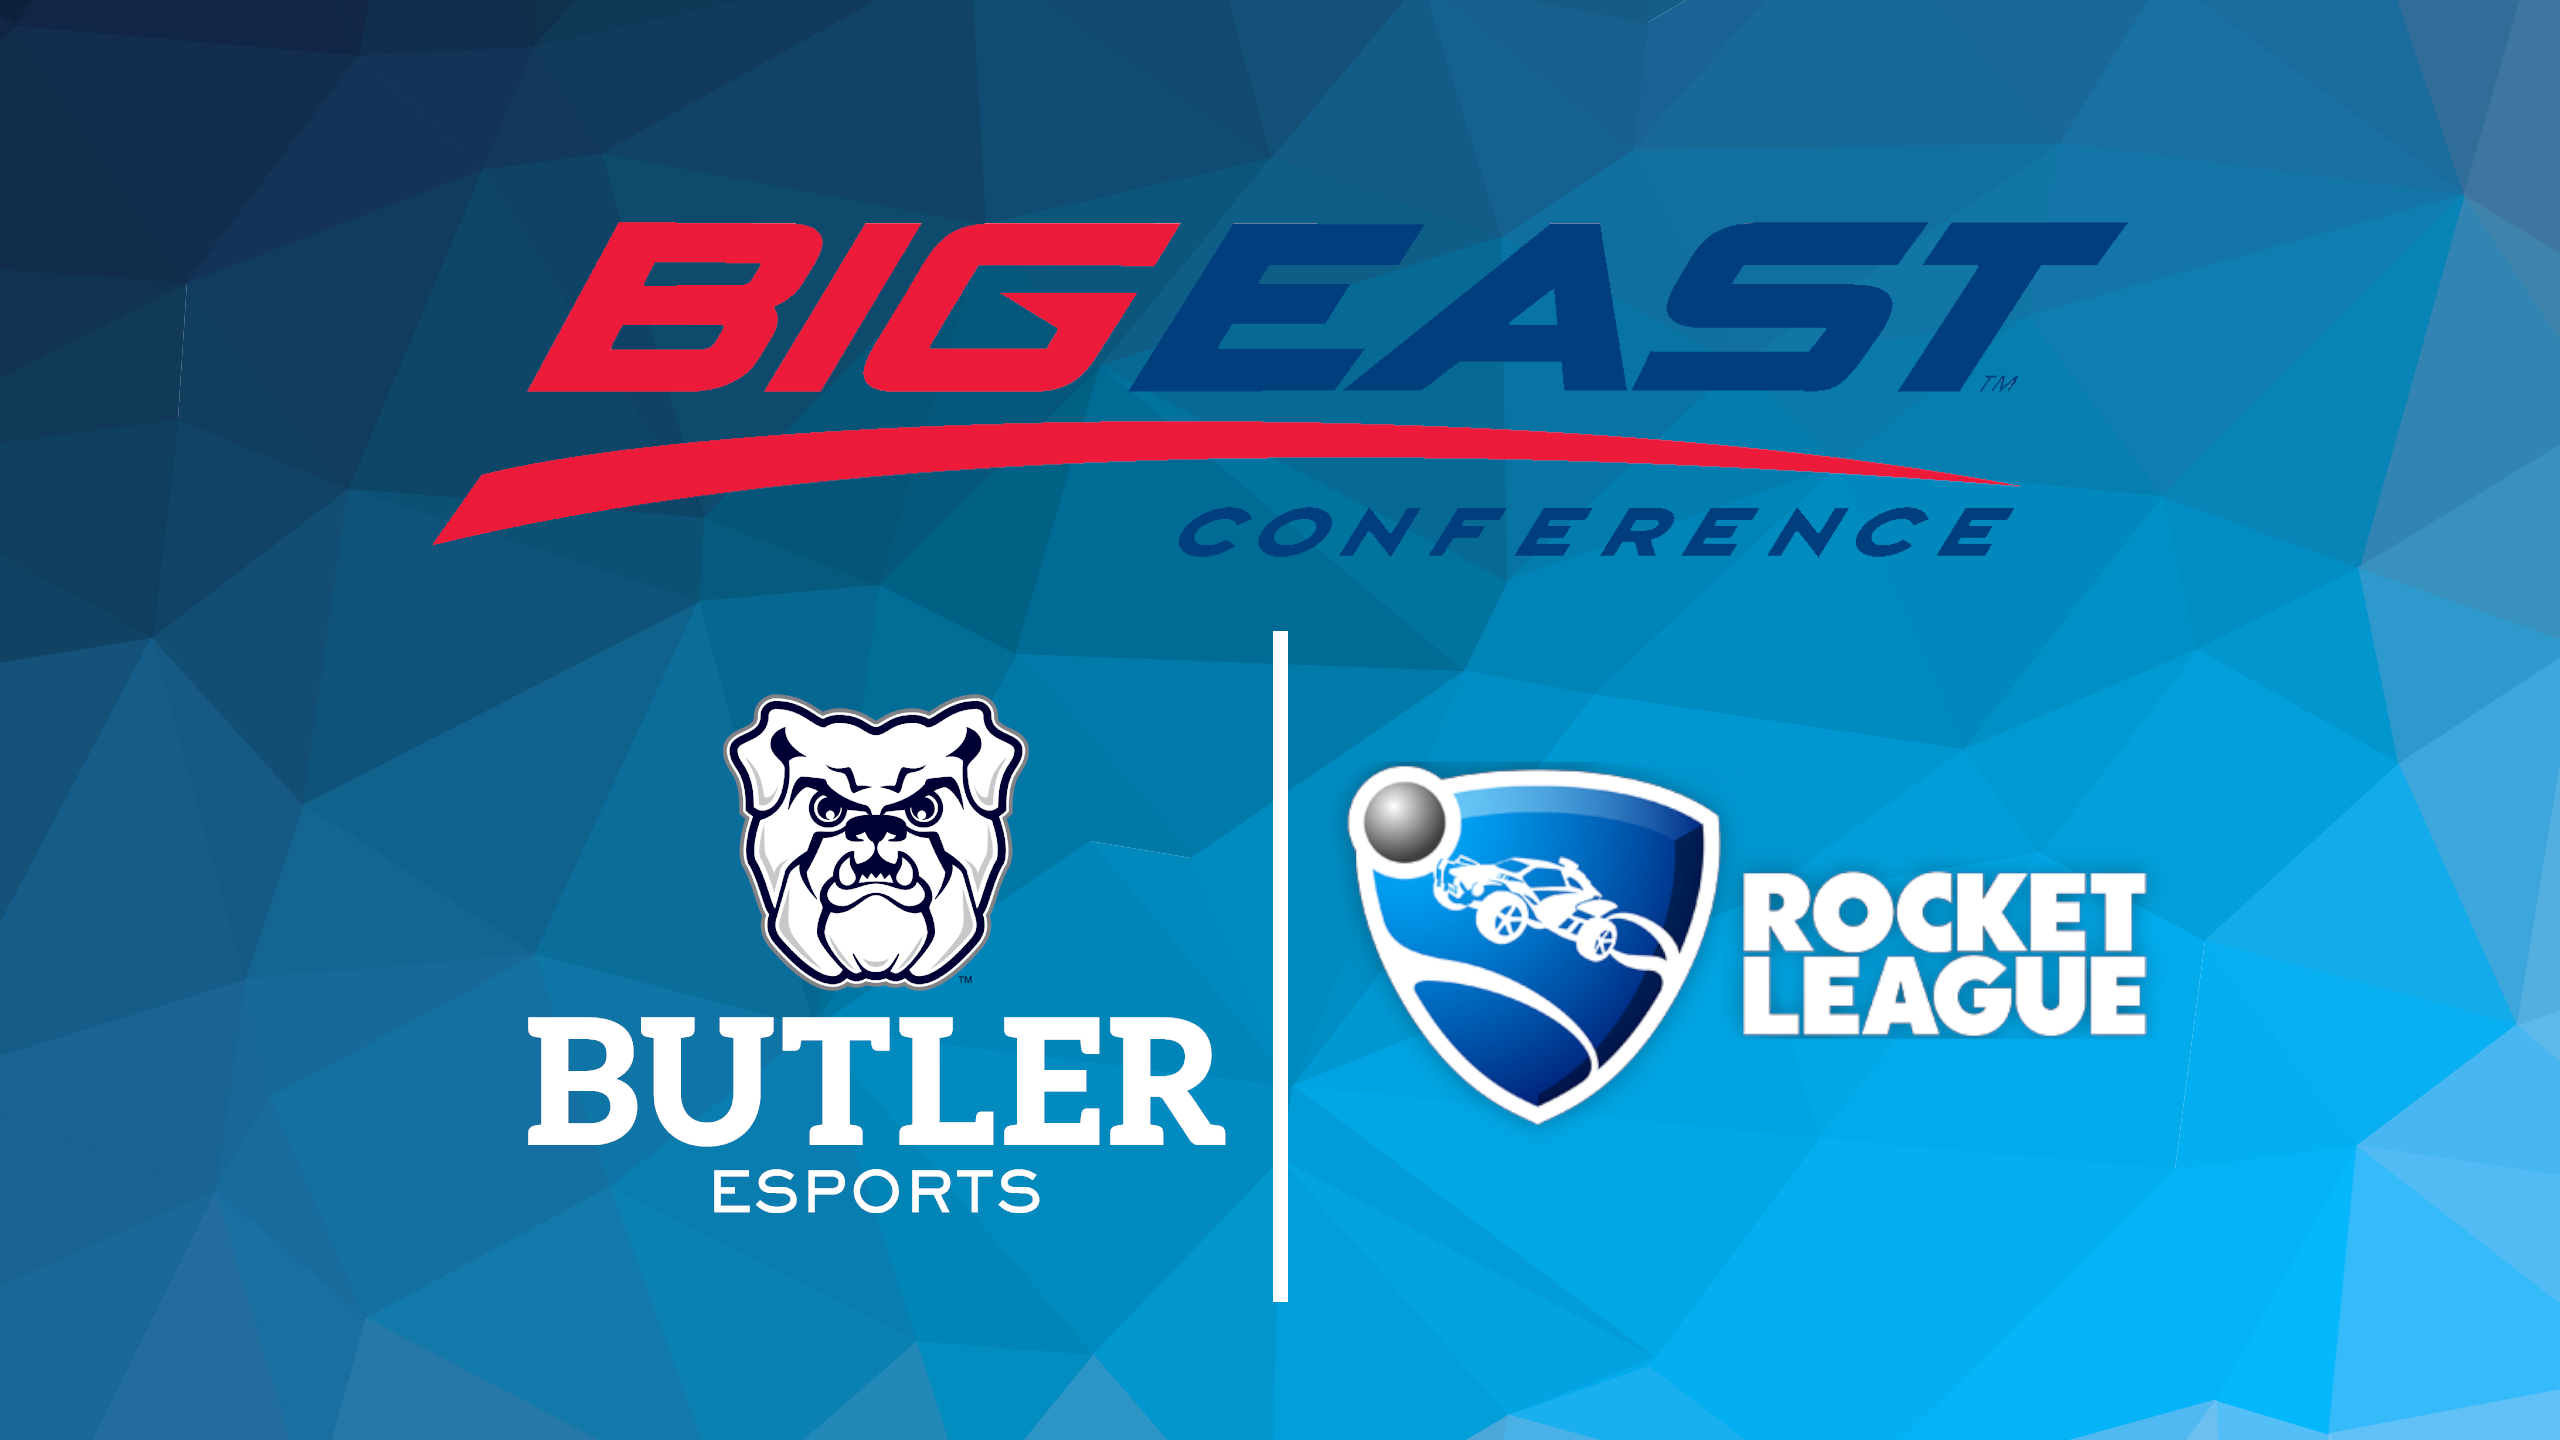 Butler Rocket League - BIG EAST Playoffs